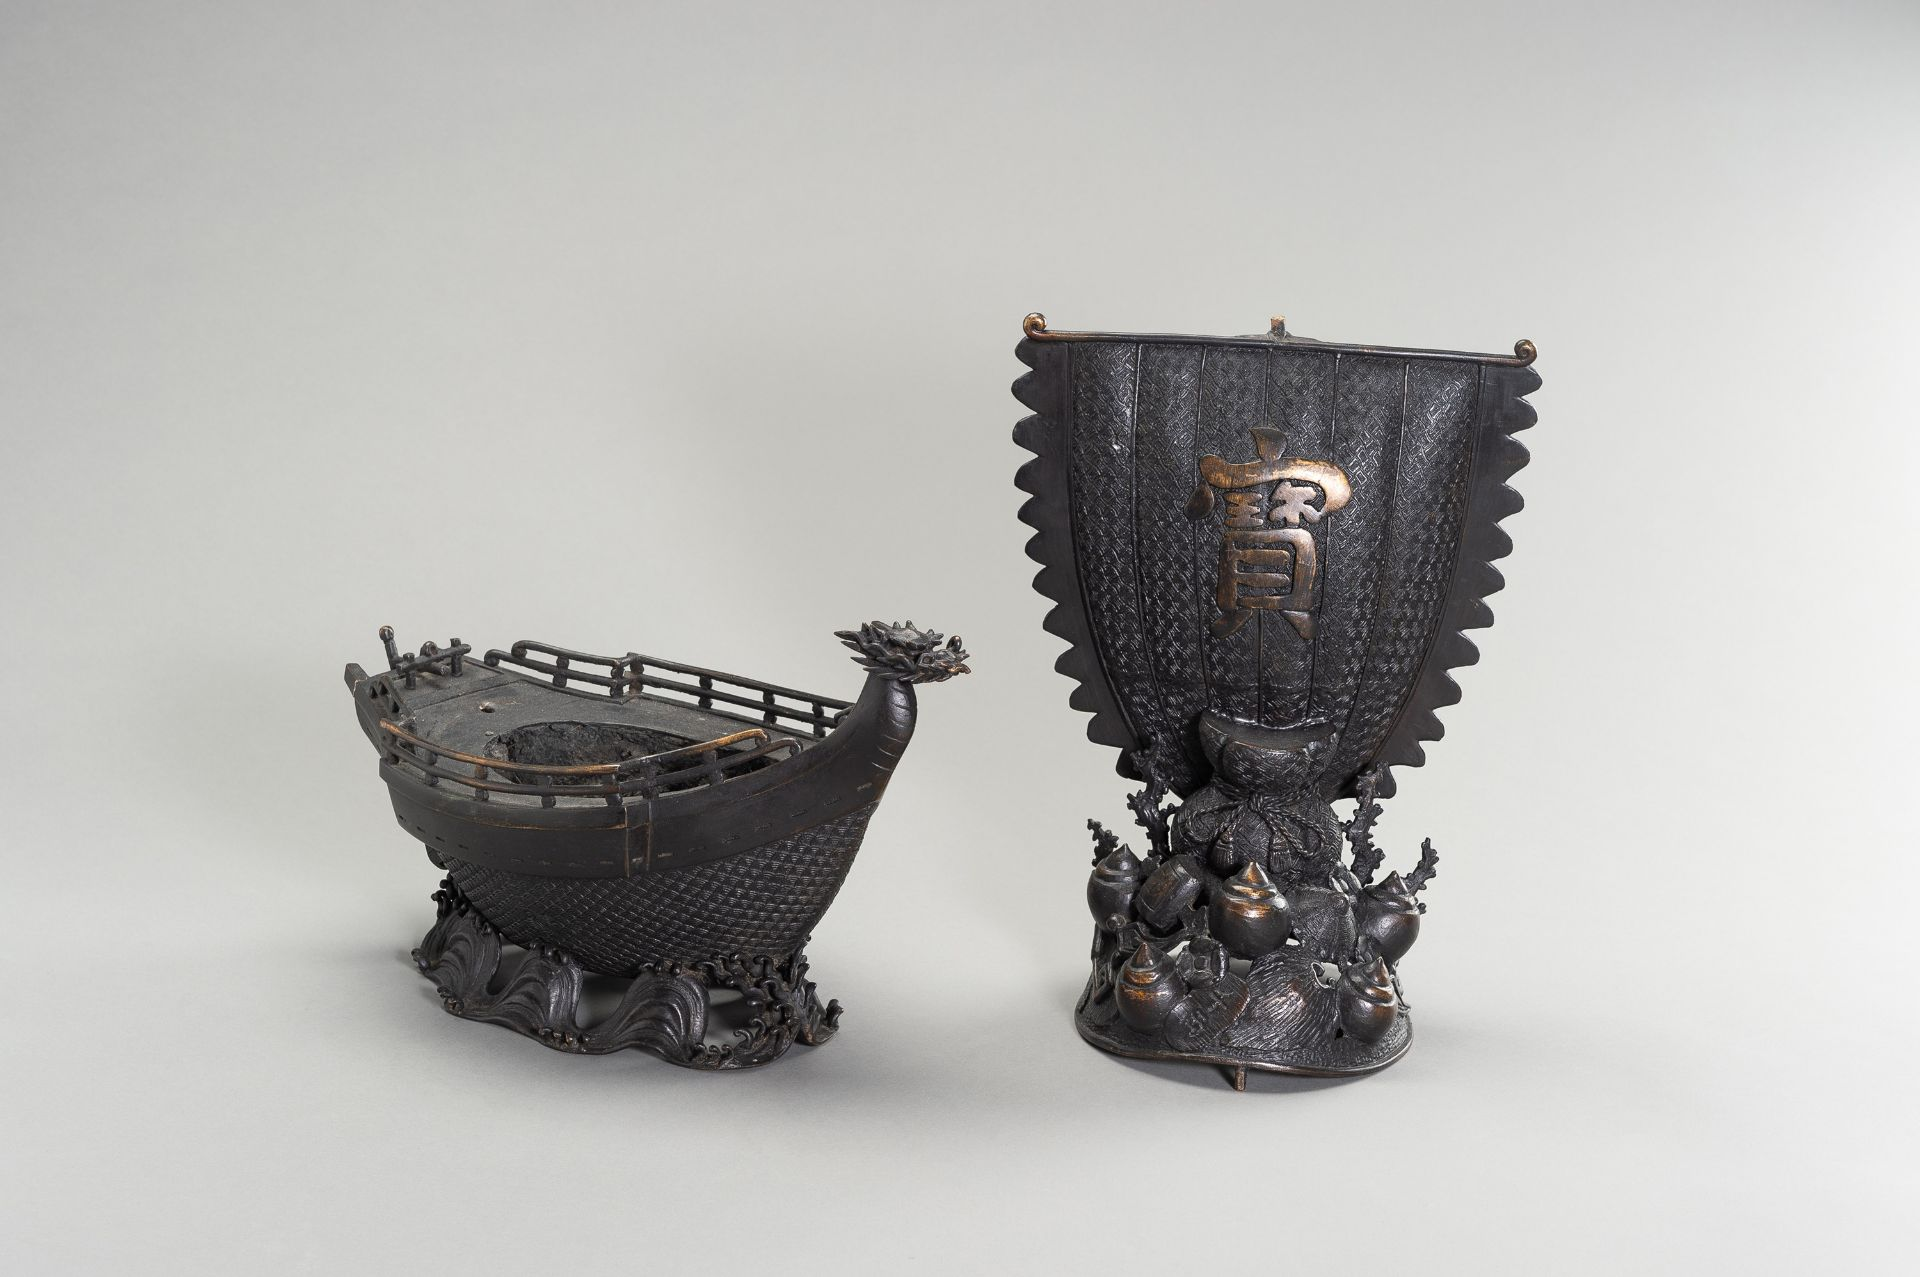 A LARGE BRONZE CENSER IN THE SHAPE OF A TREASURE SHIP - Image 8 of 13